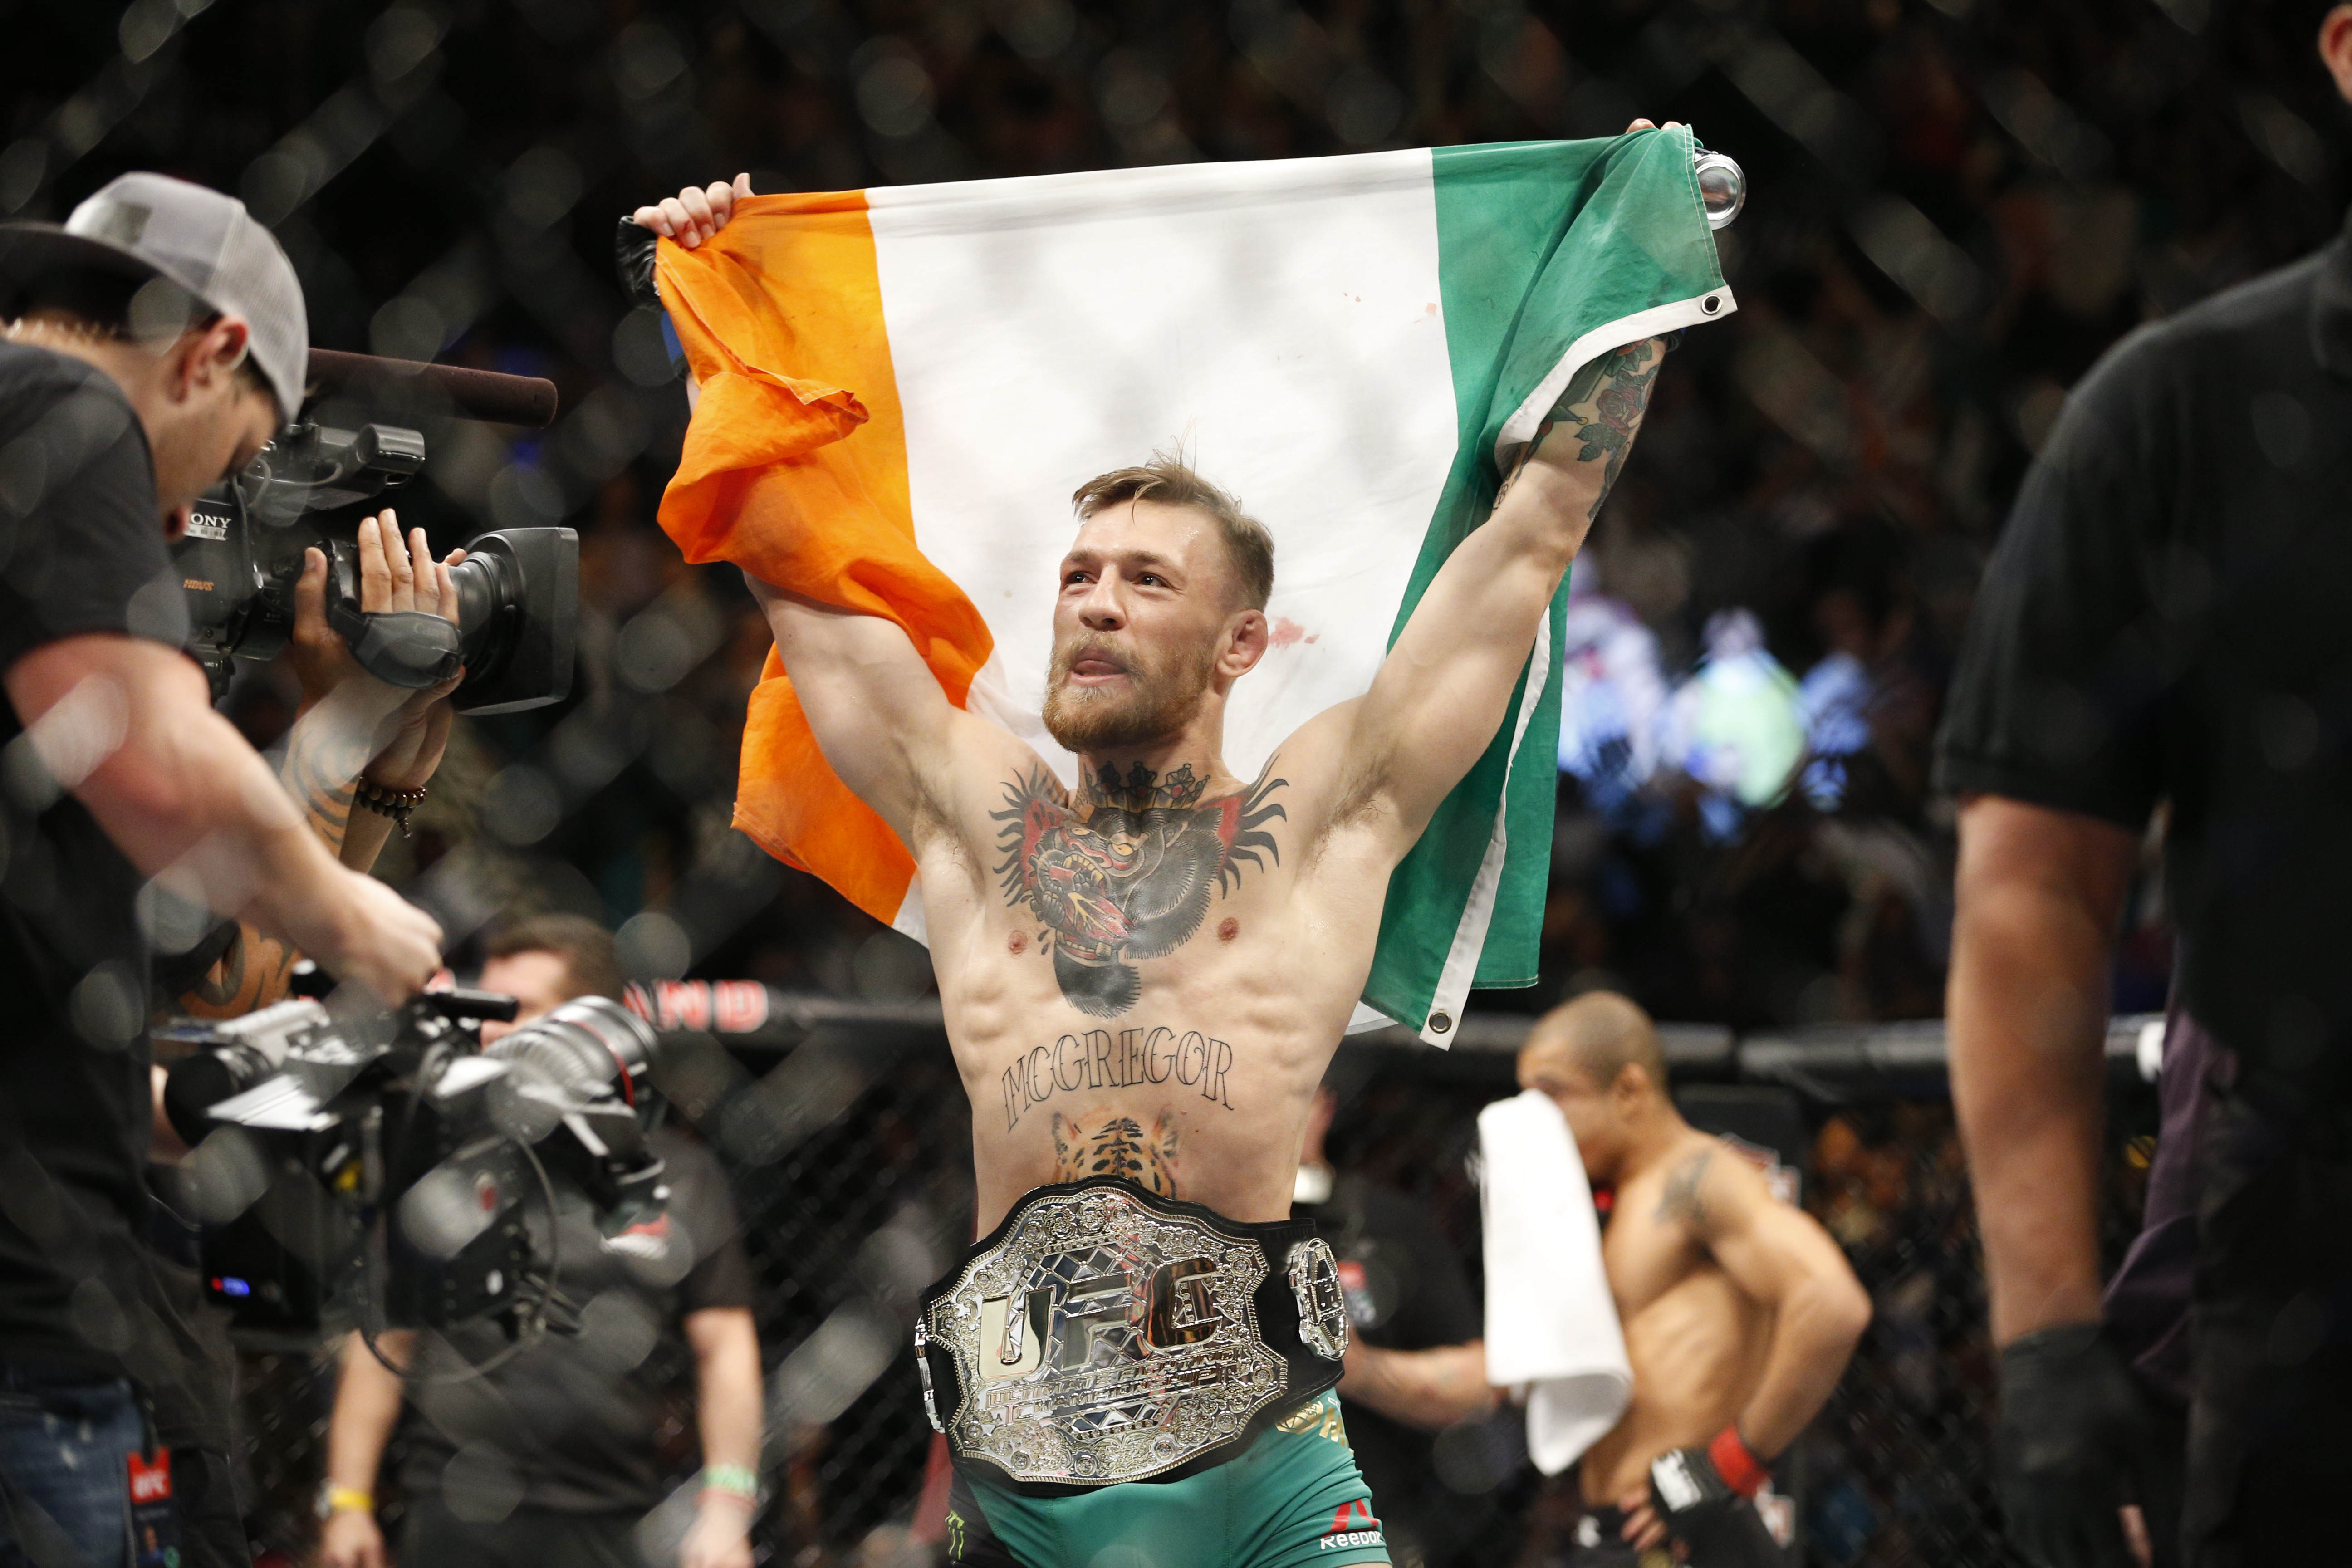 McGregor Vs Mayweather Super Fight May Not Be Happening After All Conor McGregor PA